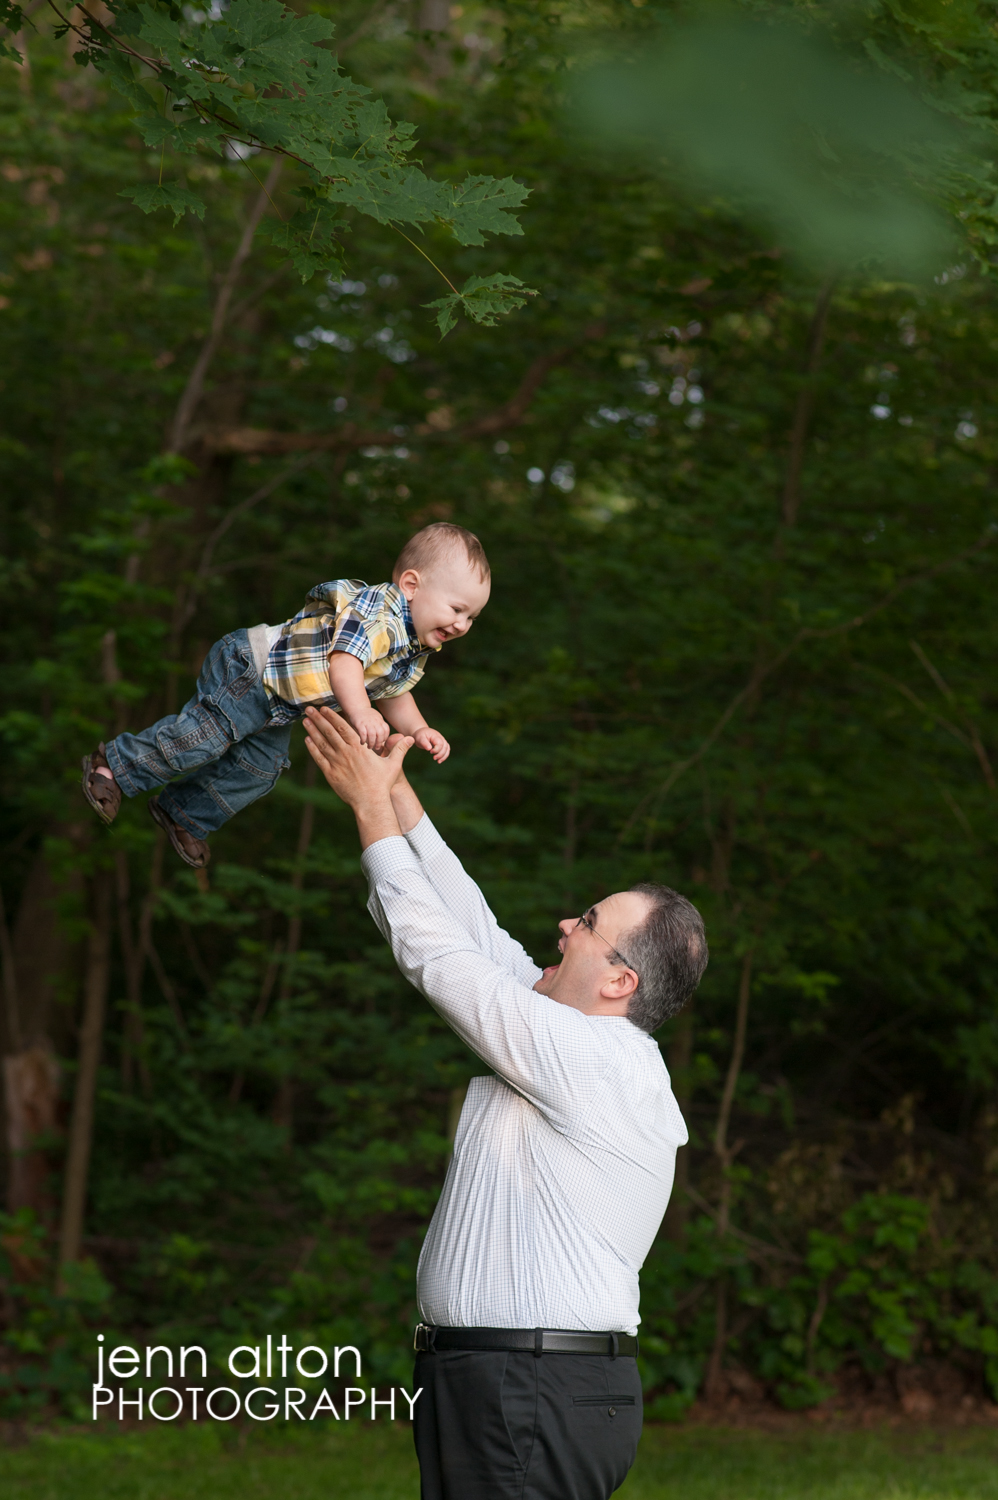 Little boy tossed in air by dad